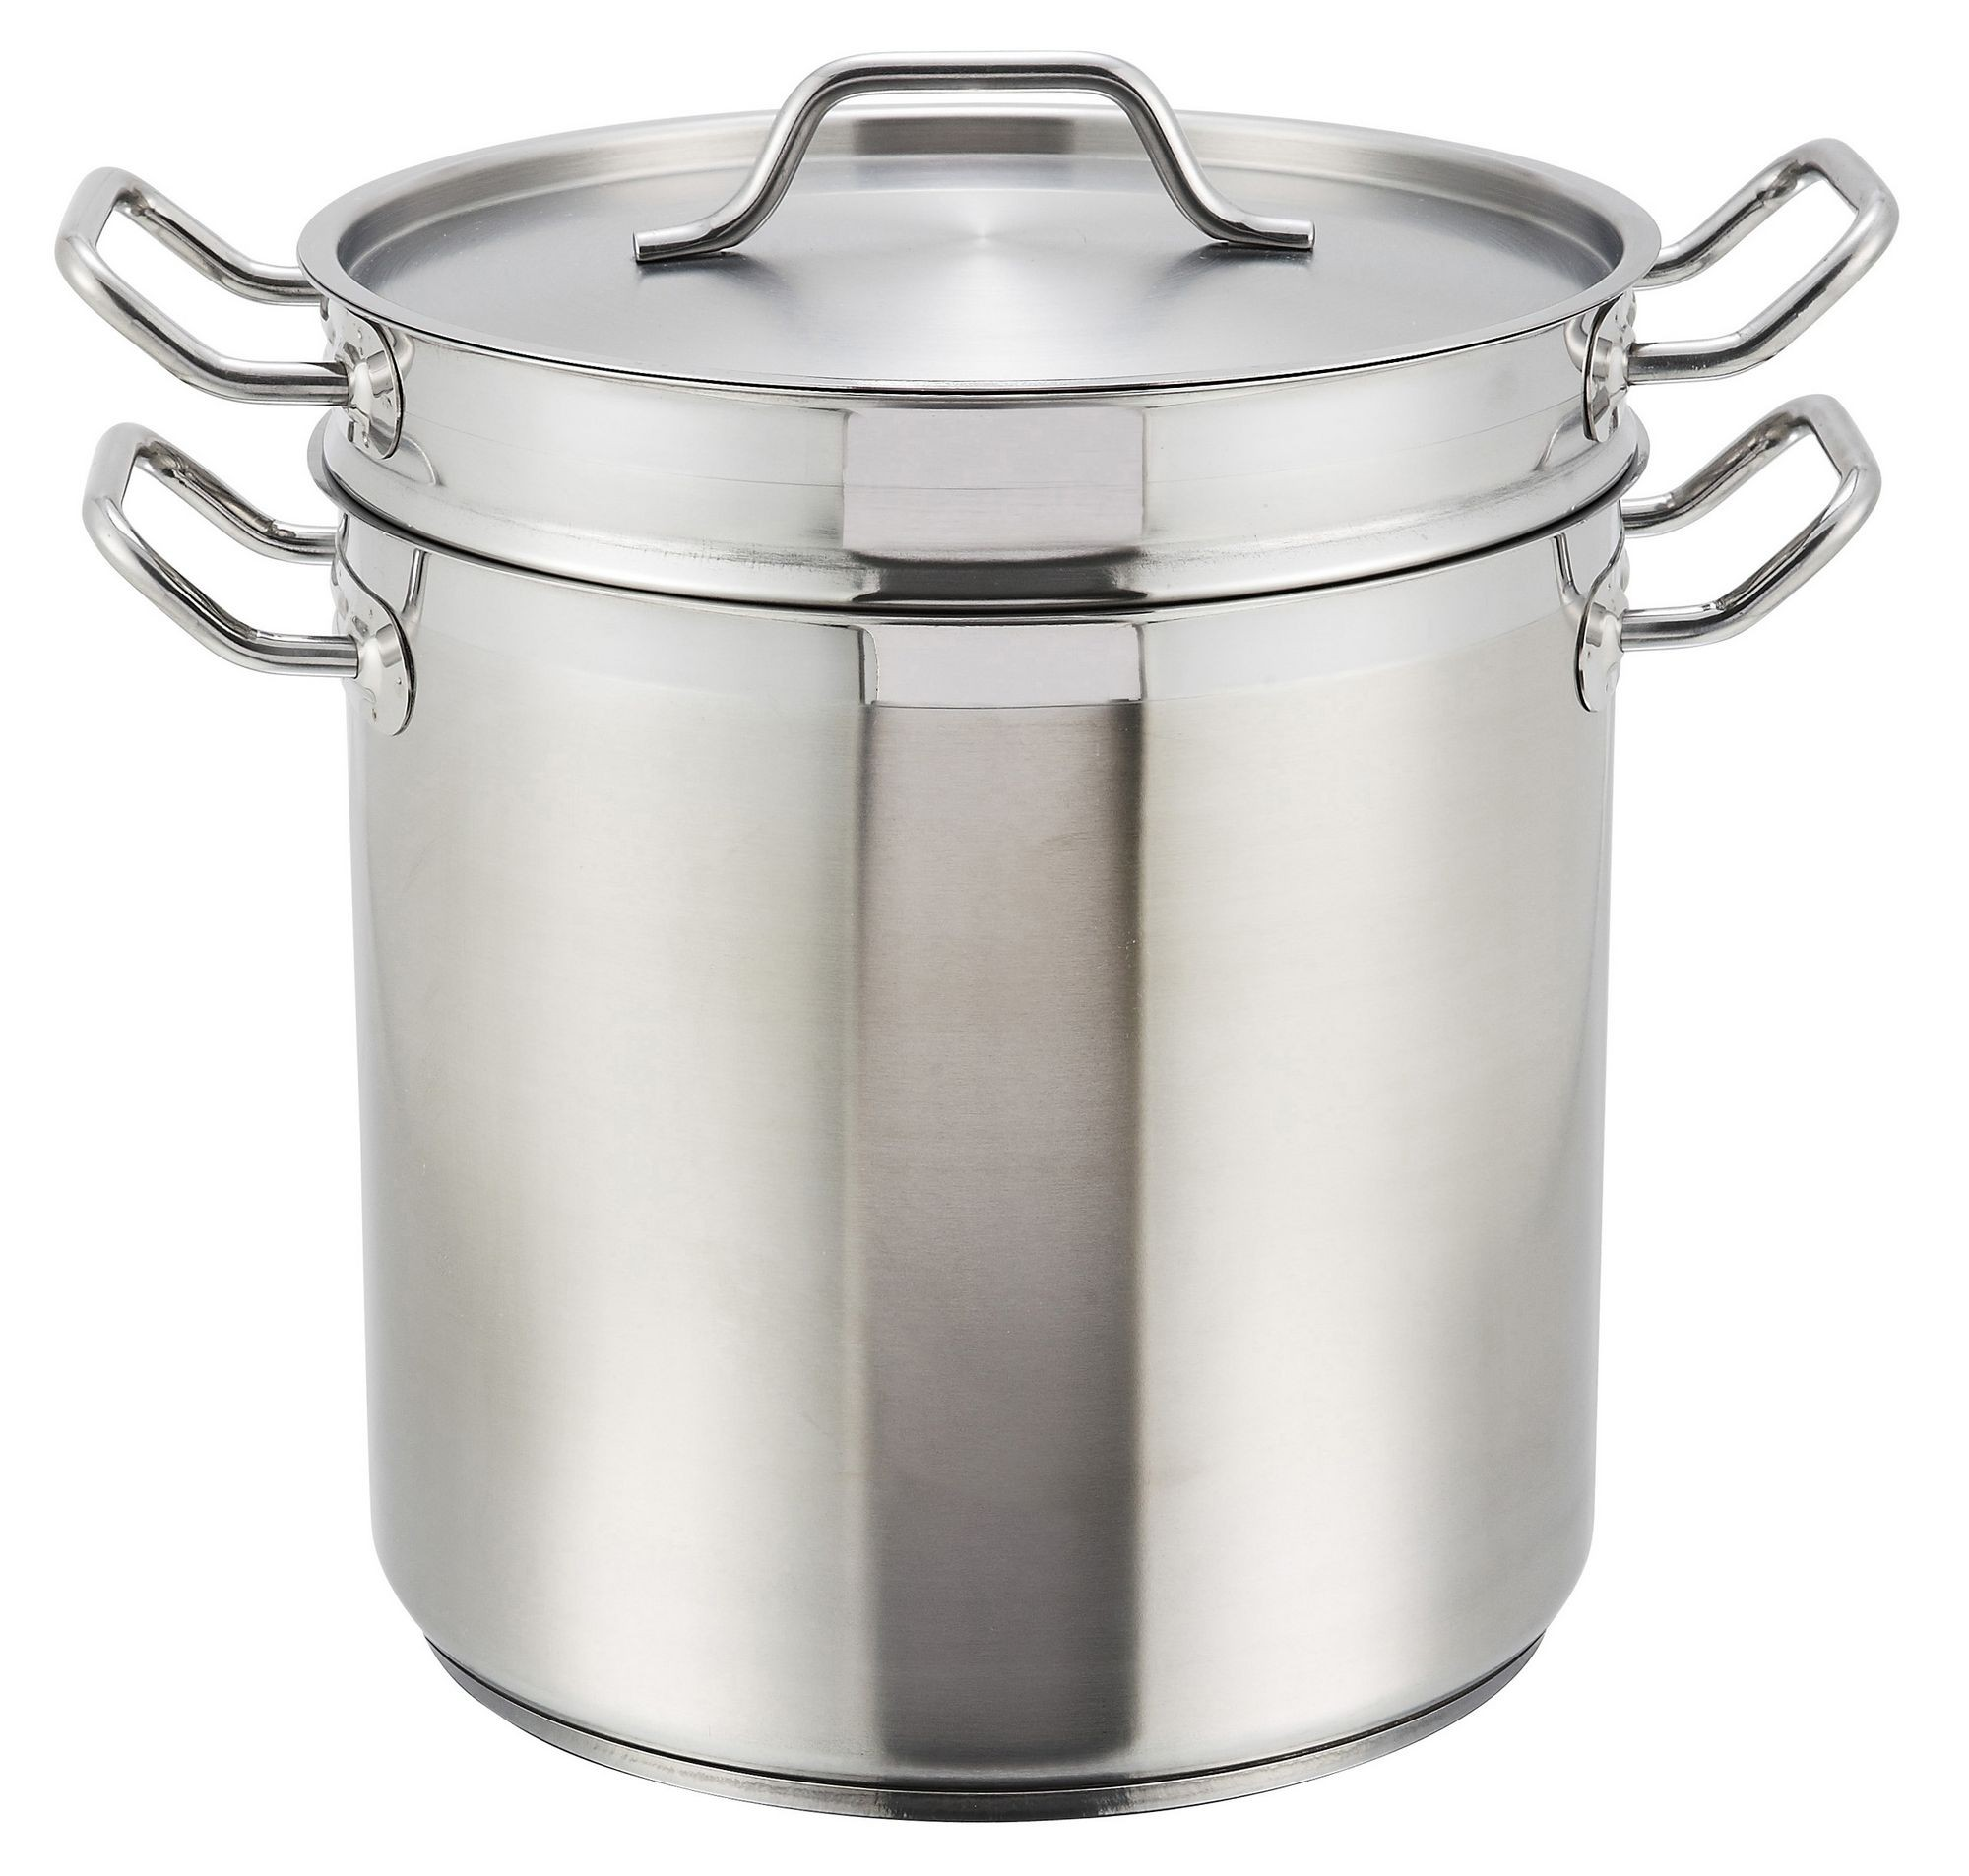 Winco SSDB-16S Stainless Steel 16 Qt. Steamer/Pasta Cooker with Cover